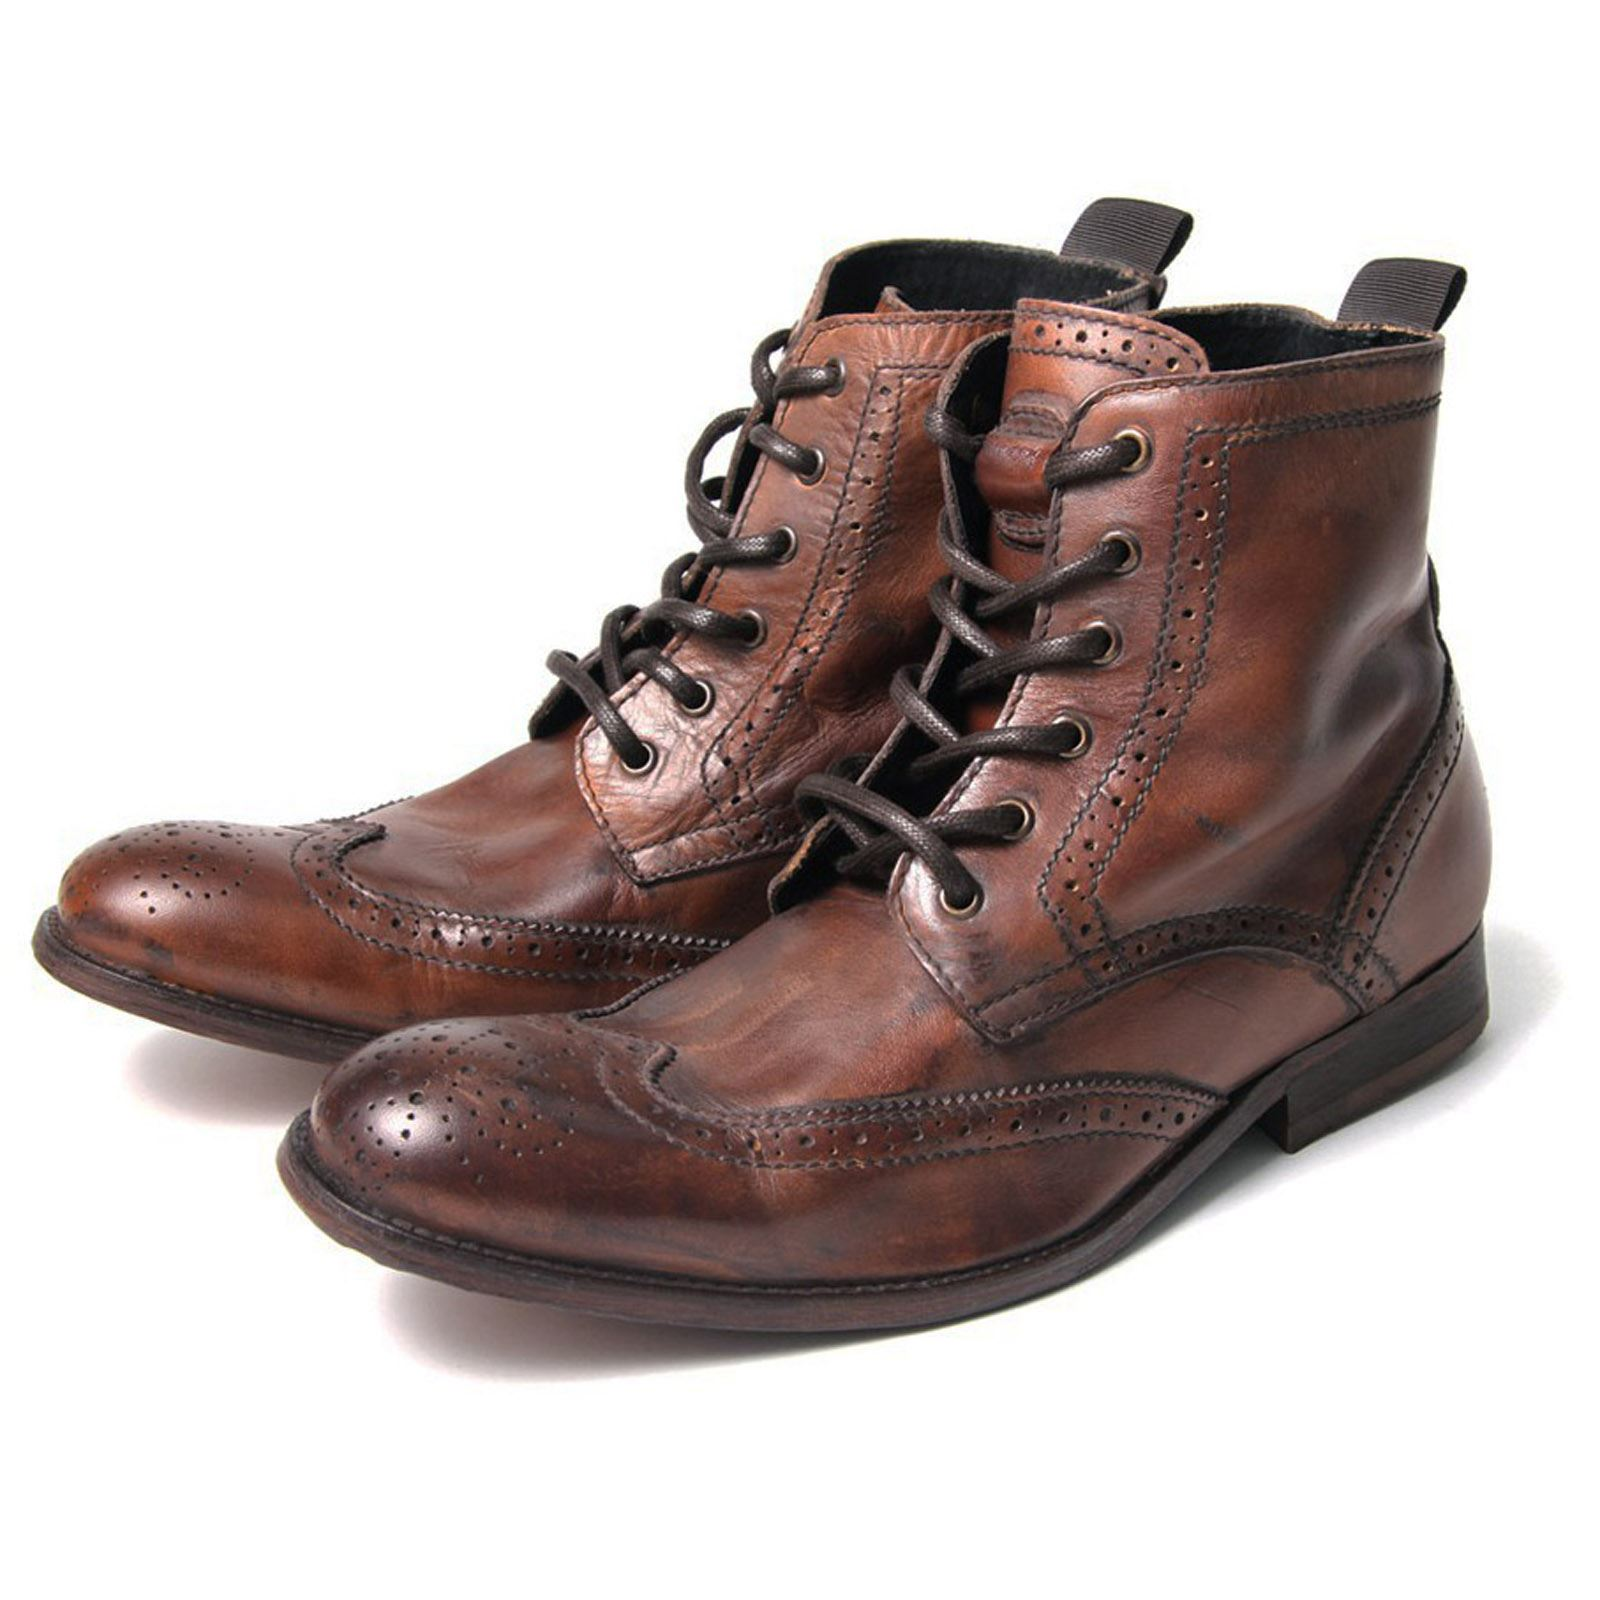 h by hudson boots angus distressed leather brogue boot